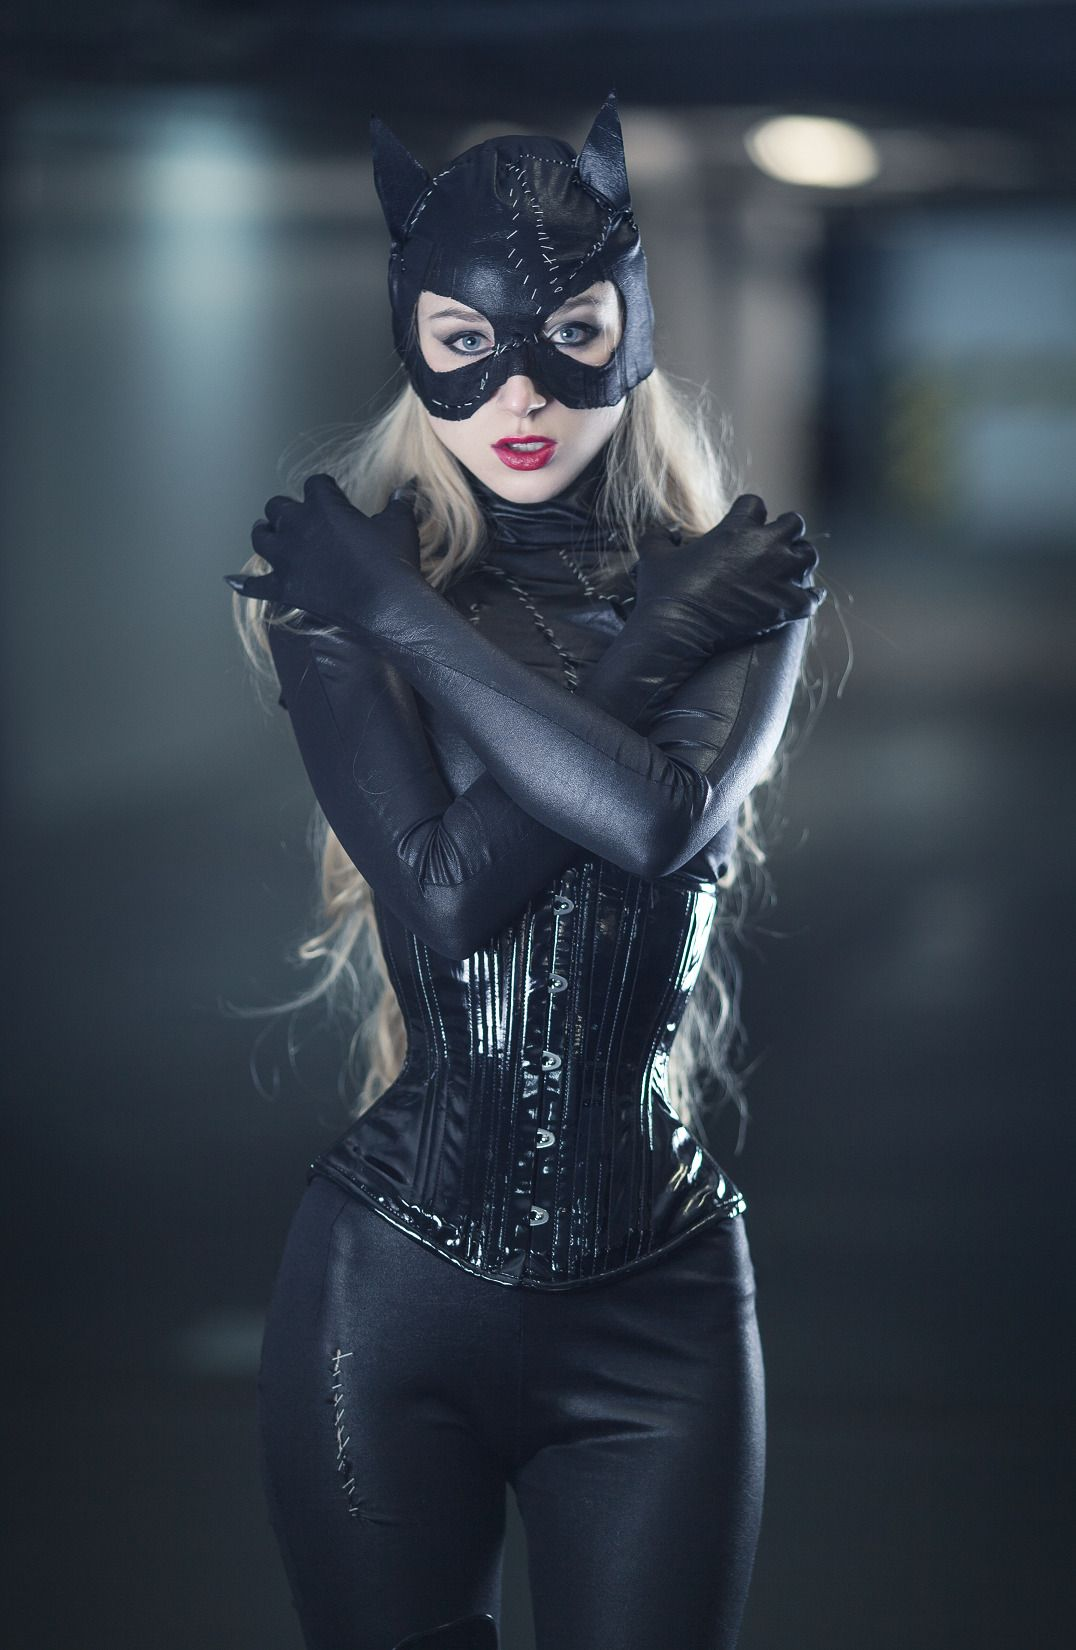 Anime Girl In A Cat Suit Porn pin on superheroine cosplays that caught my eye